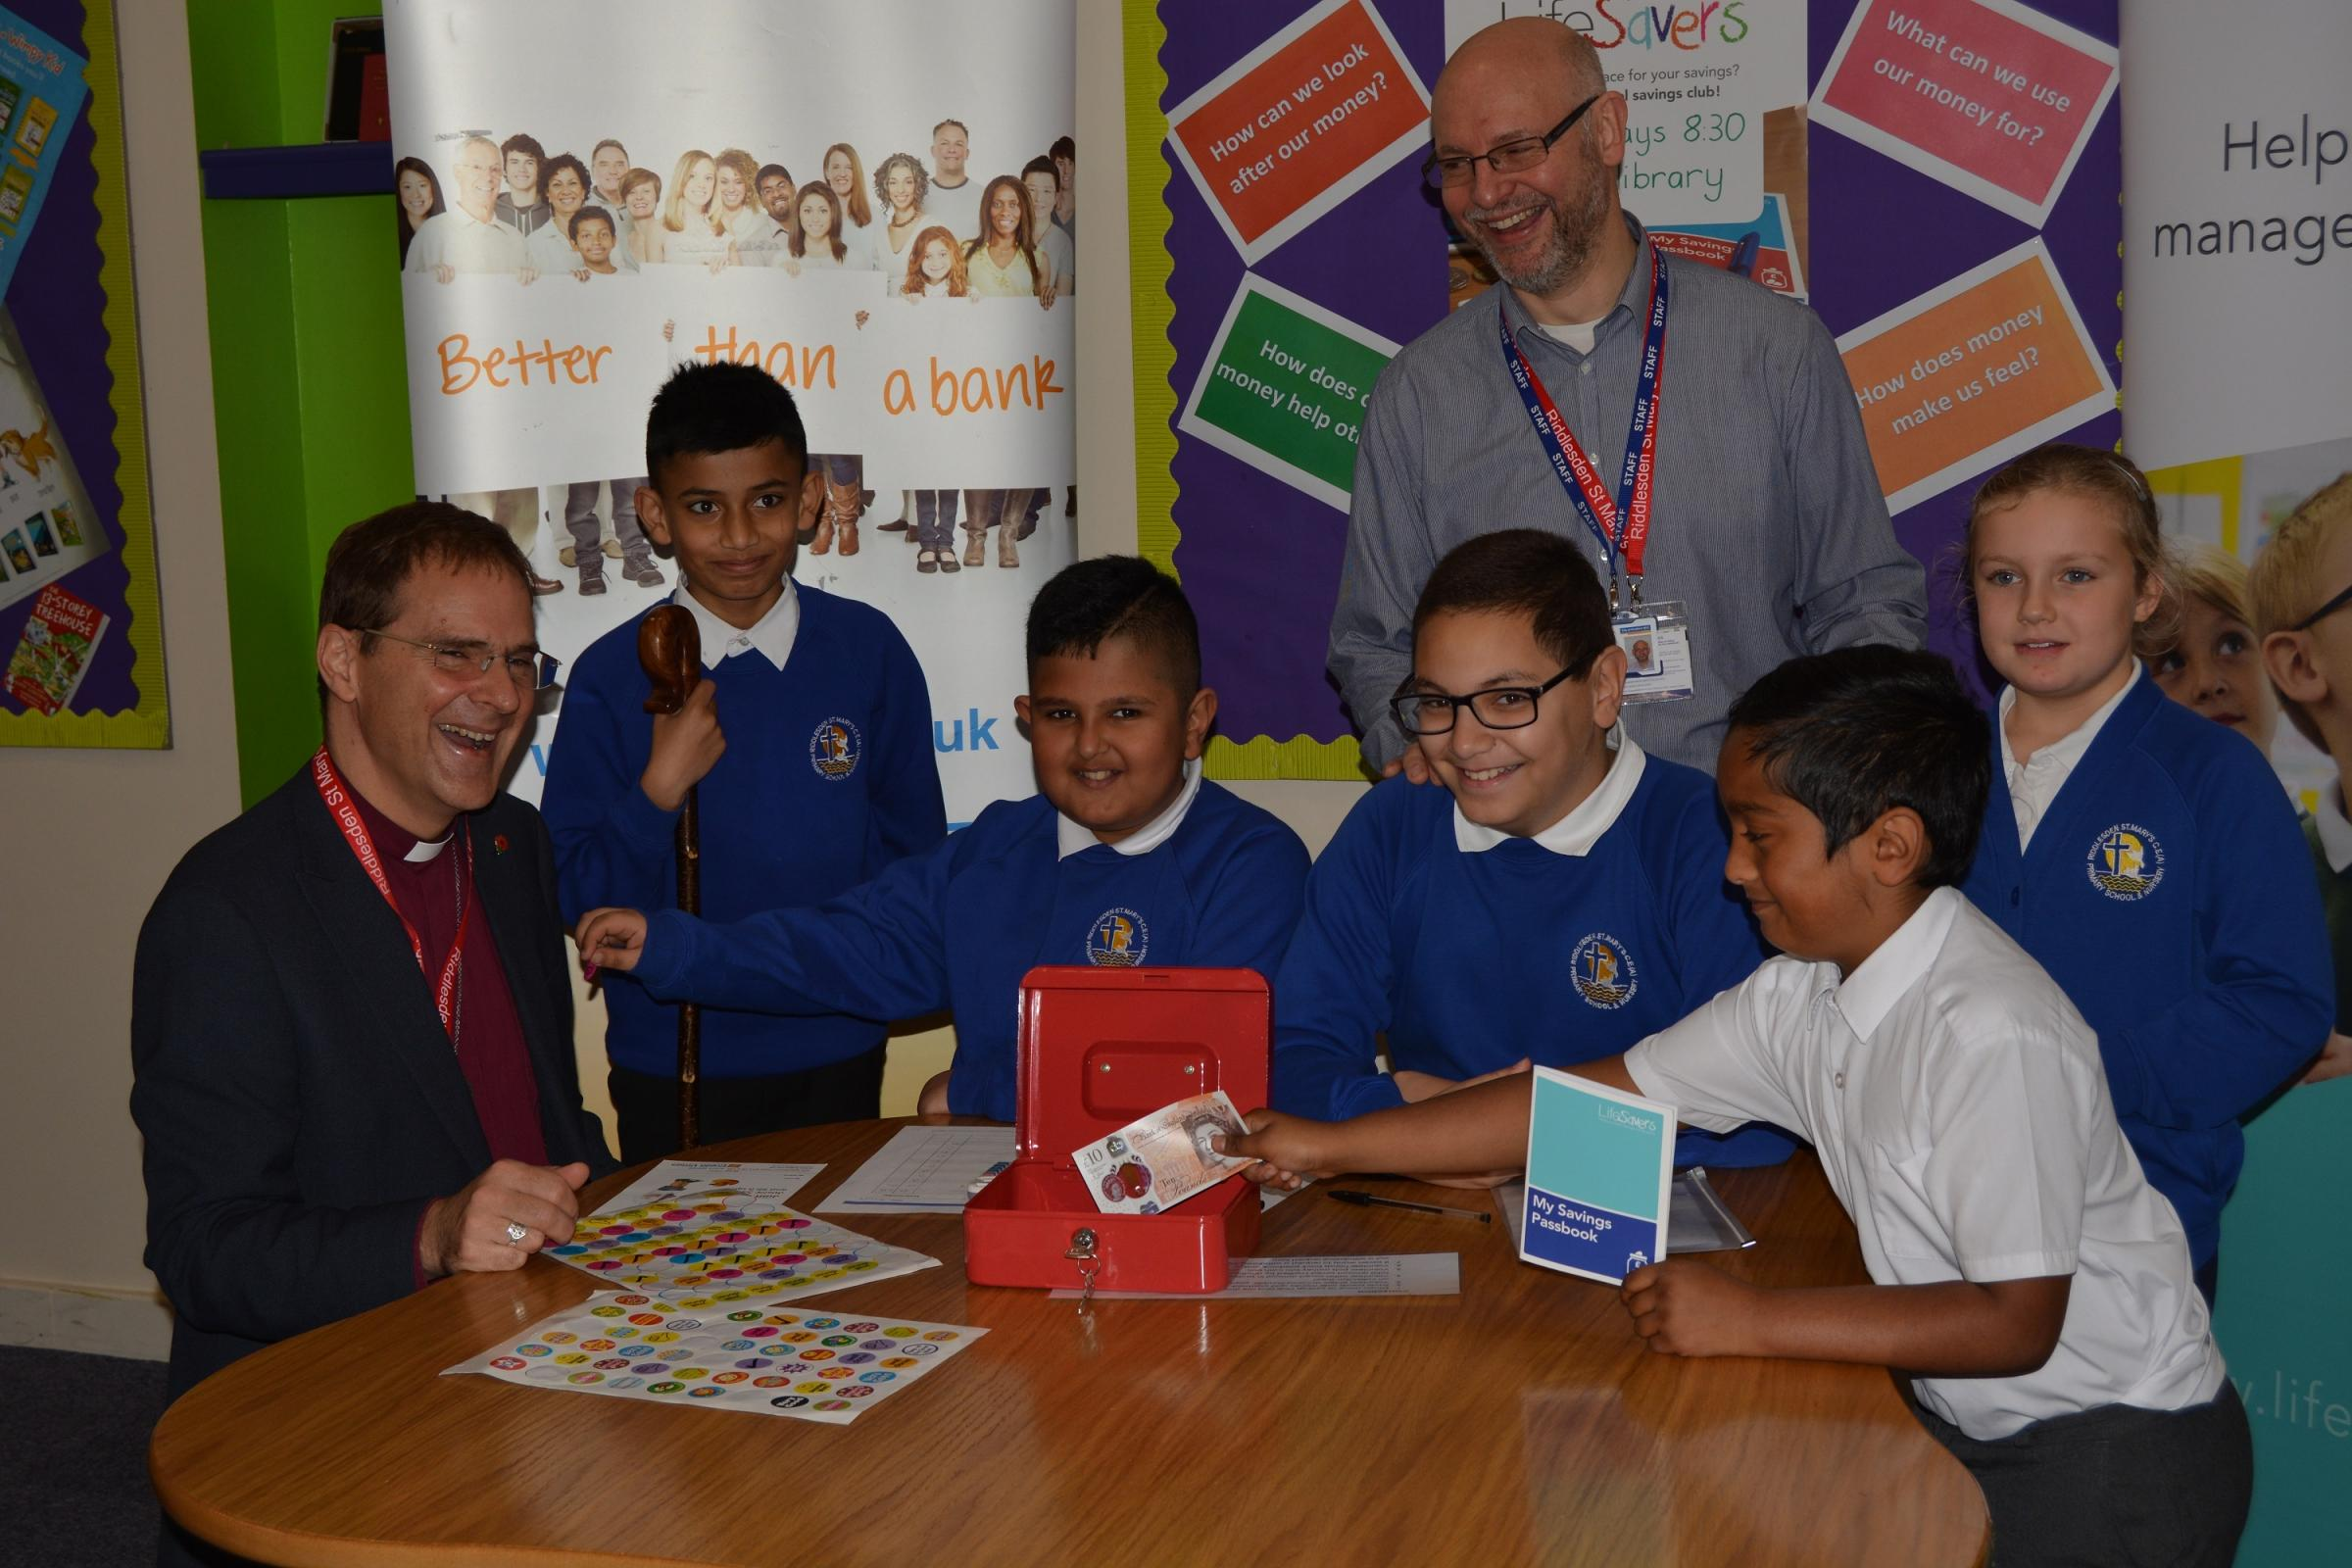 Bishop of Bradford, the Rt Rev Dr Toby Howarth, seated left, and Ian Brewer, the financial inclusion officer for the Bradford District Credit Union, standing centre, with pupils in the savings club at Riddlesden St Mary's Primary School.